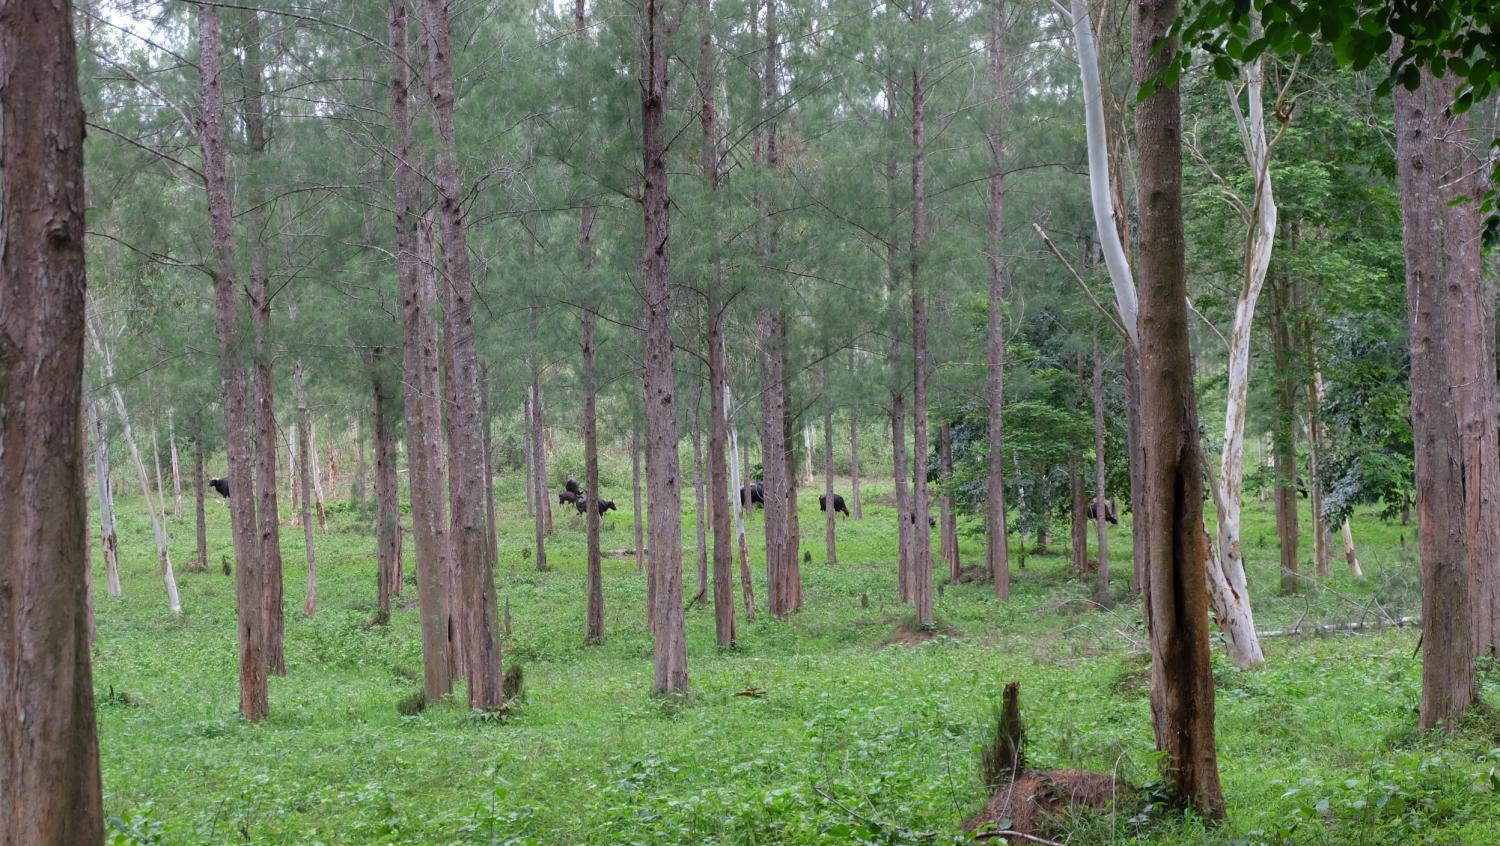 Bulls are seen grazing in the forest in Prachuap Khiri Khan's Kui Buri National Park.